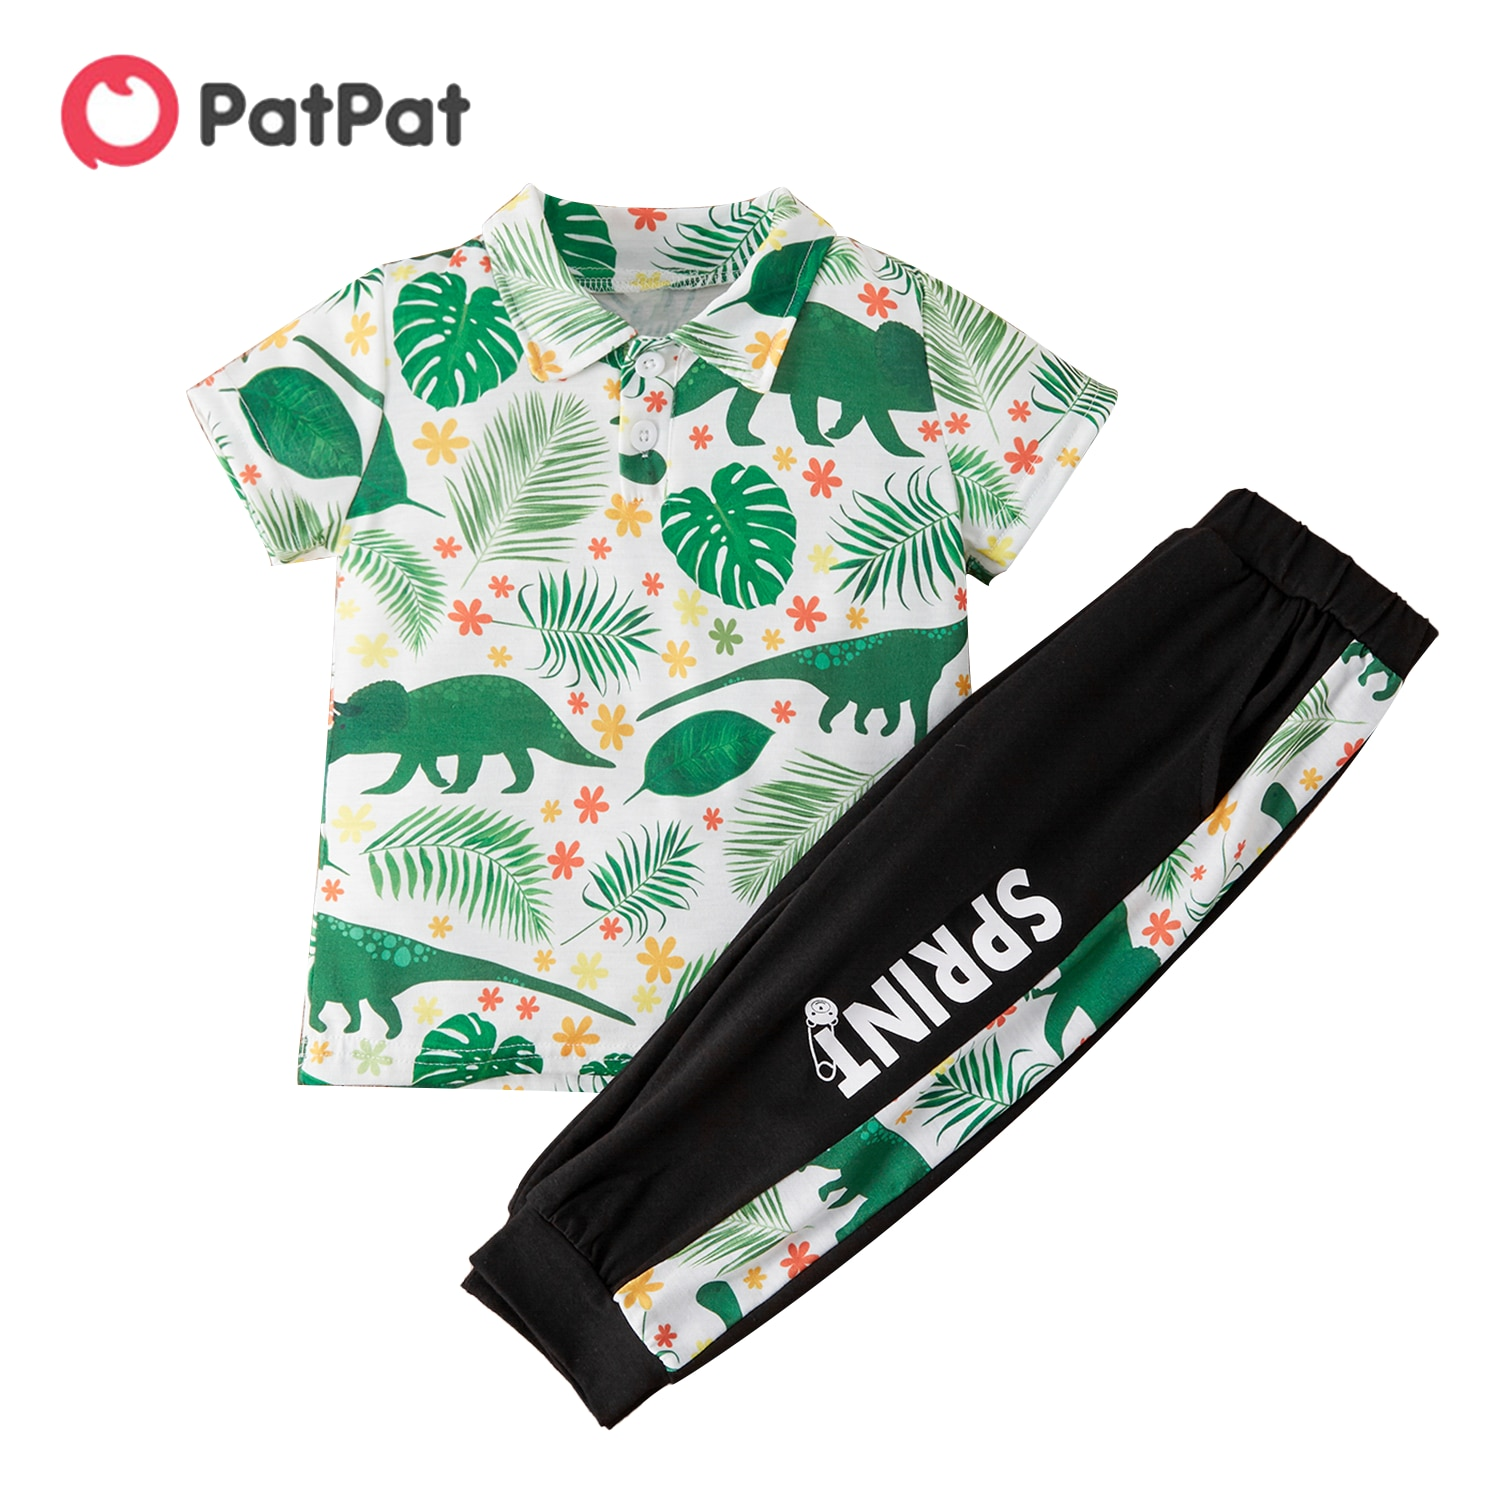 PatPat 2021 New Arrival  Summer 2-piece Baby/Toddler Dinosaur Leaf Top and Casual Trousers Set for Toddler Clothing Sets